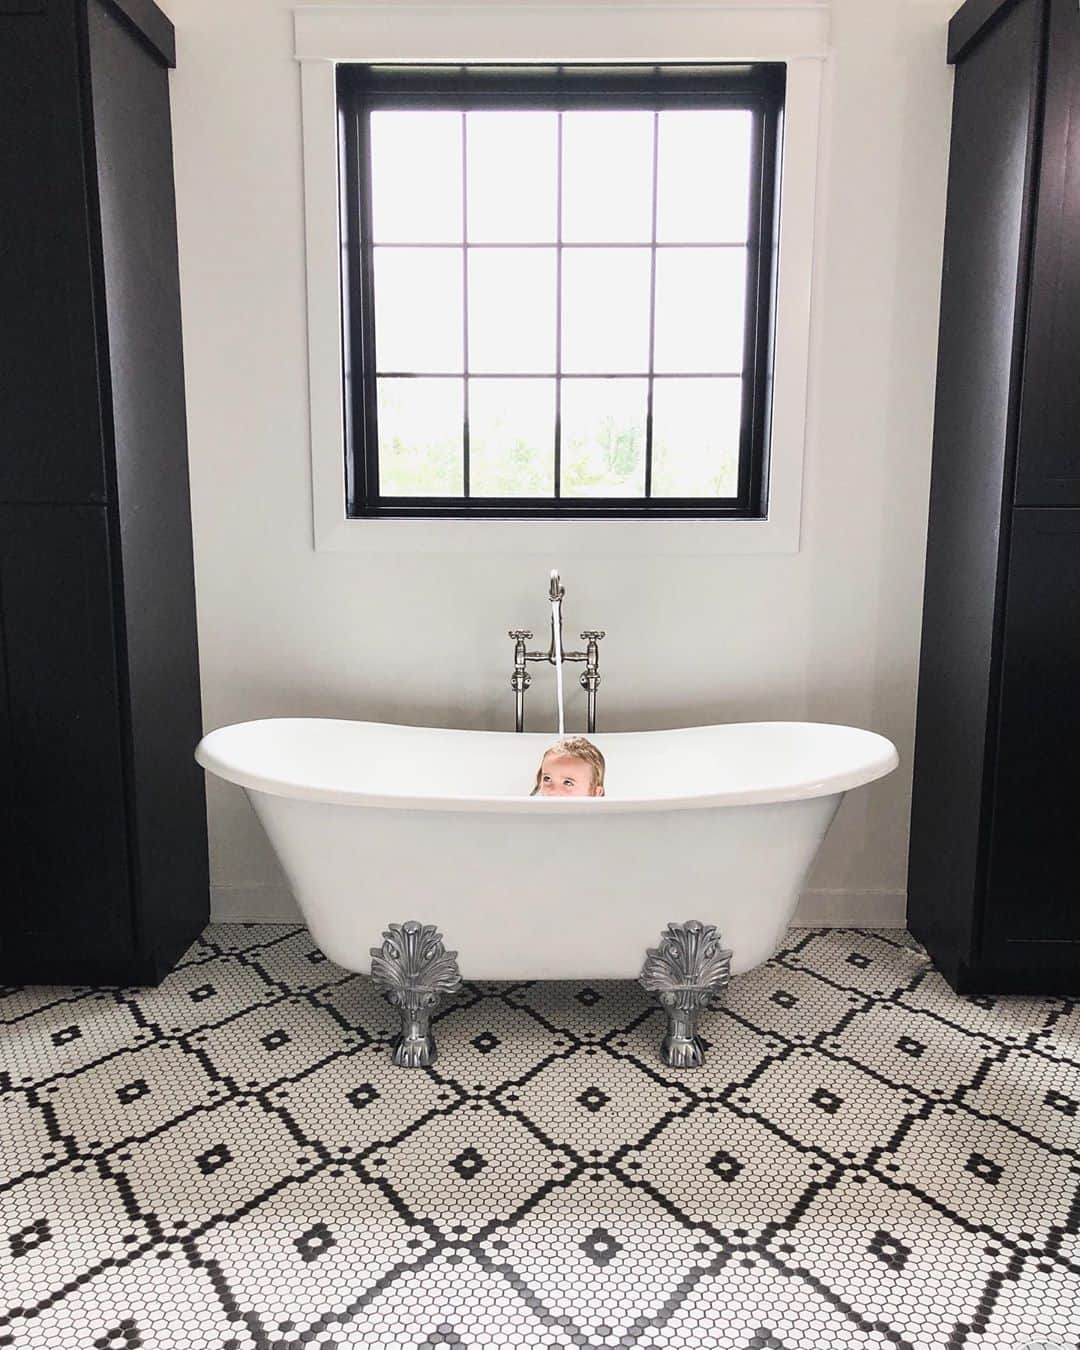 black and white bathroom with face peeking out of the freestanding tub and black picture window directly above